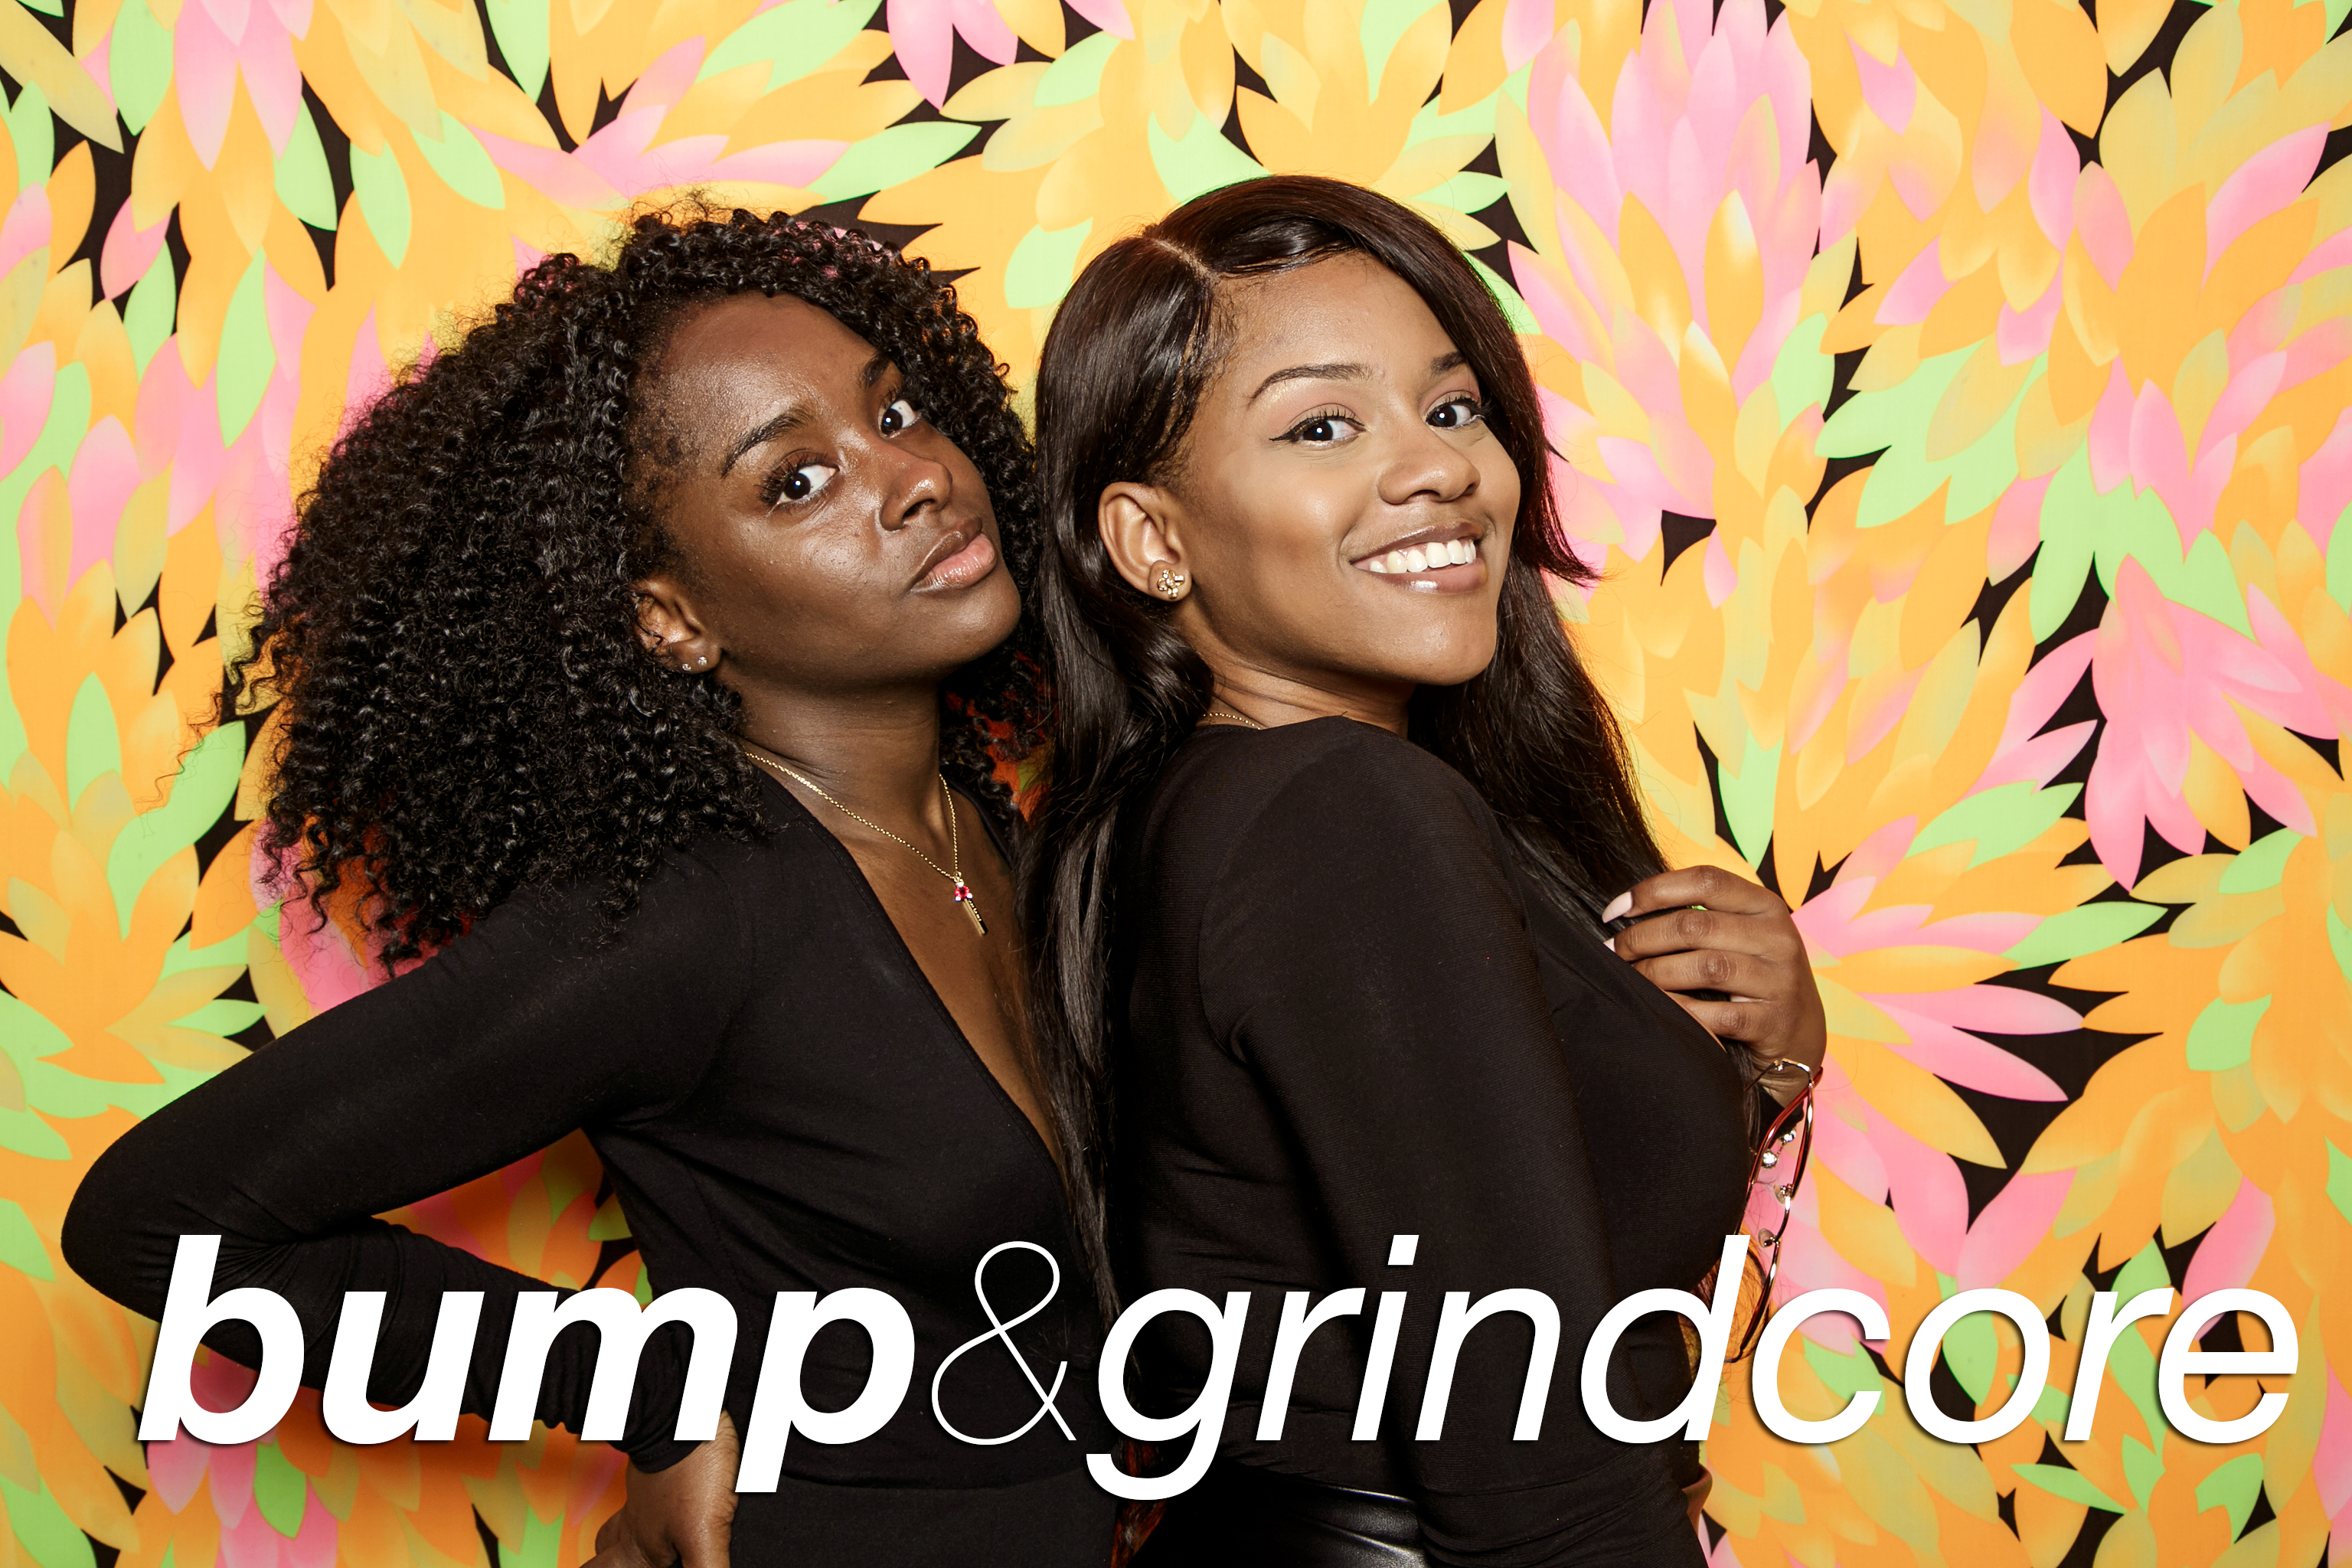 glitterguts portrait booth photos from bump and grindcore at beauty bar chicago, july 2018